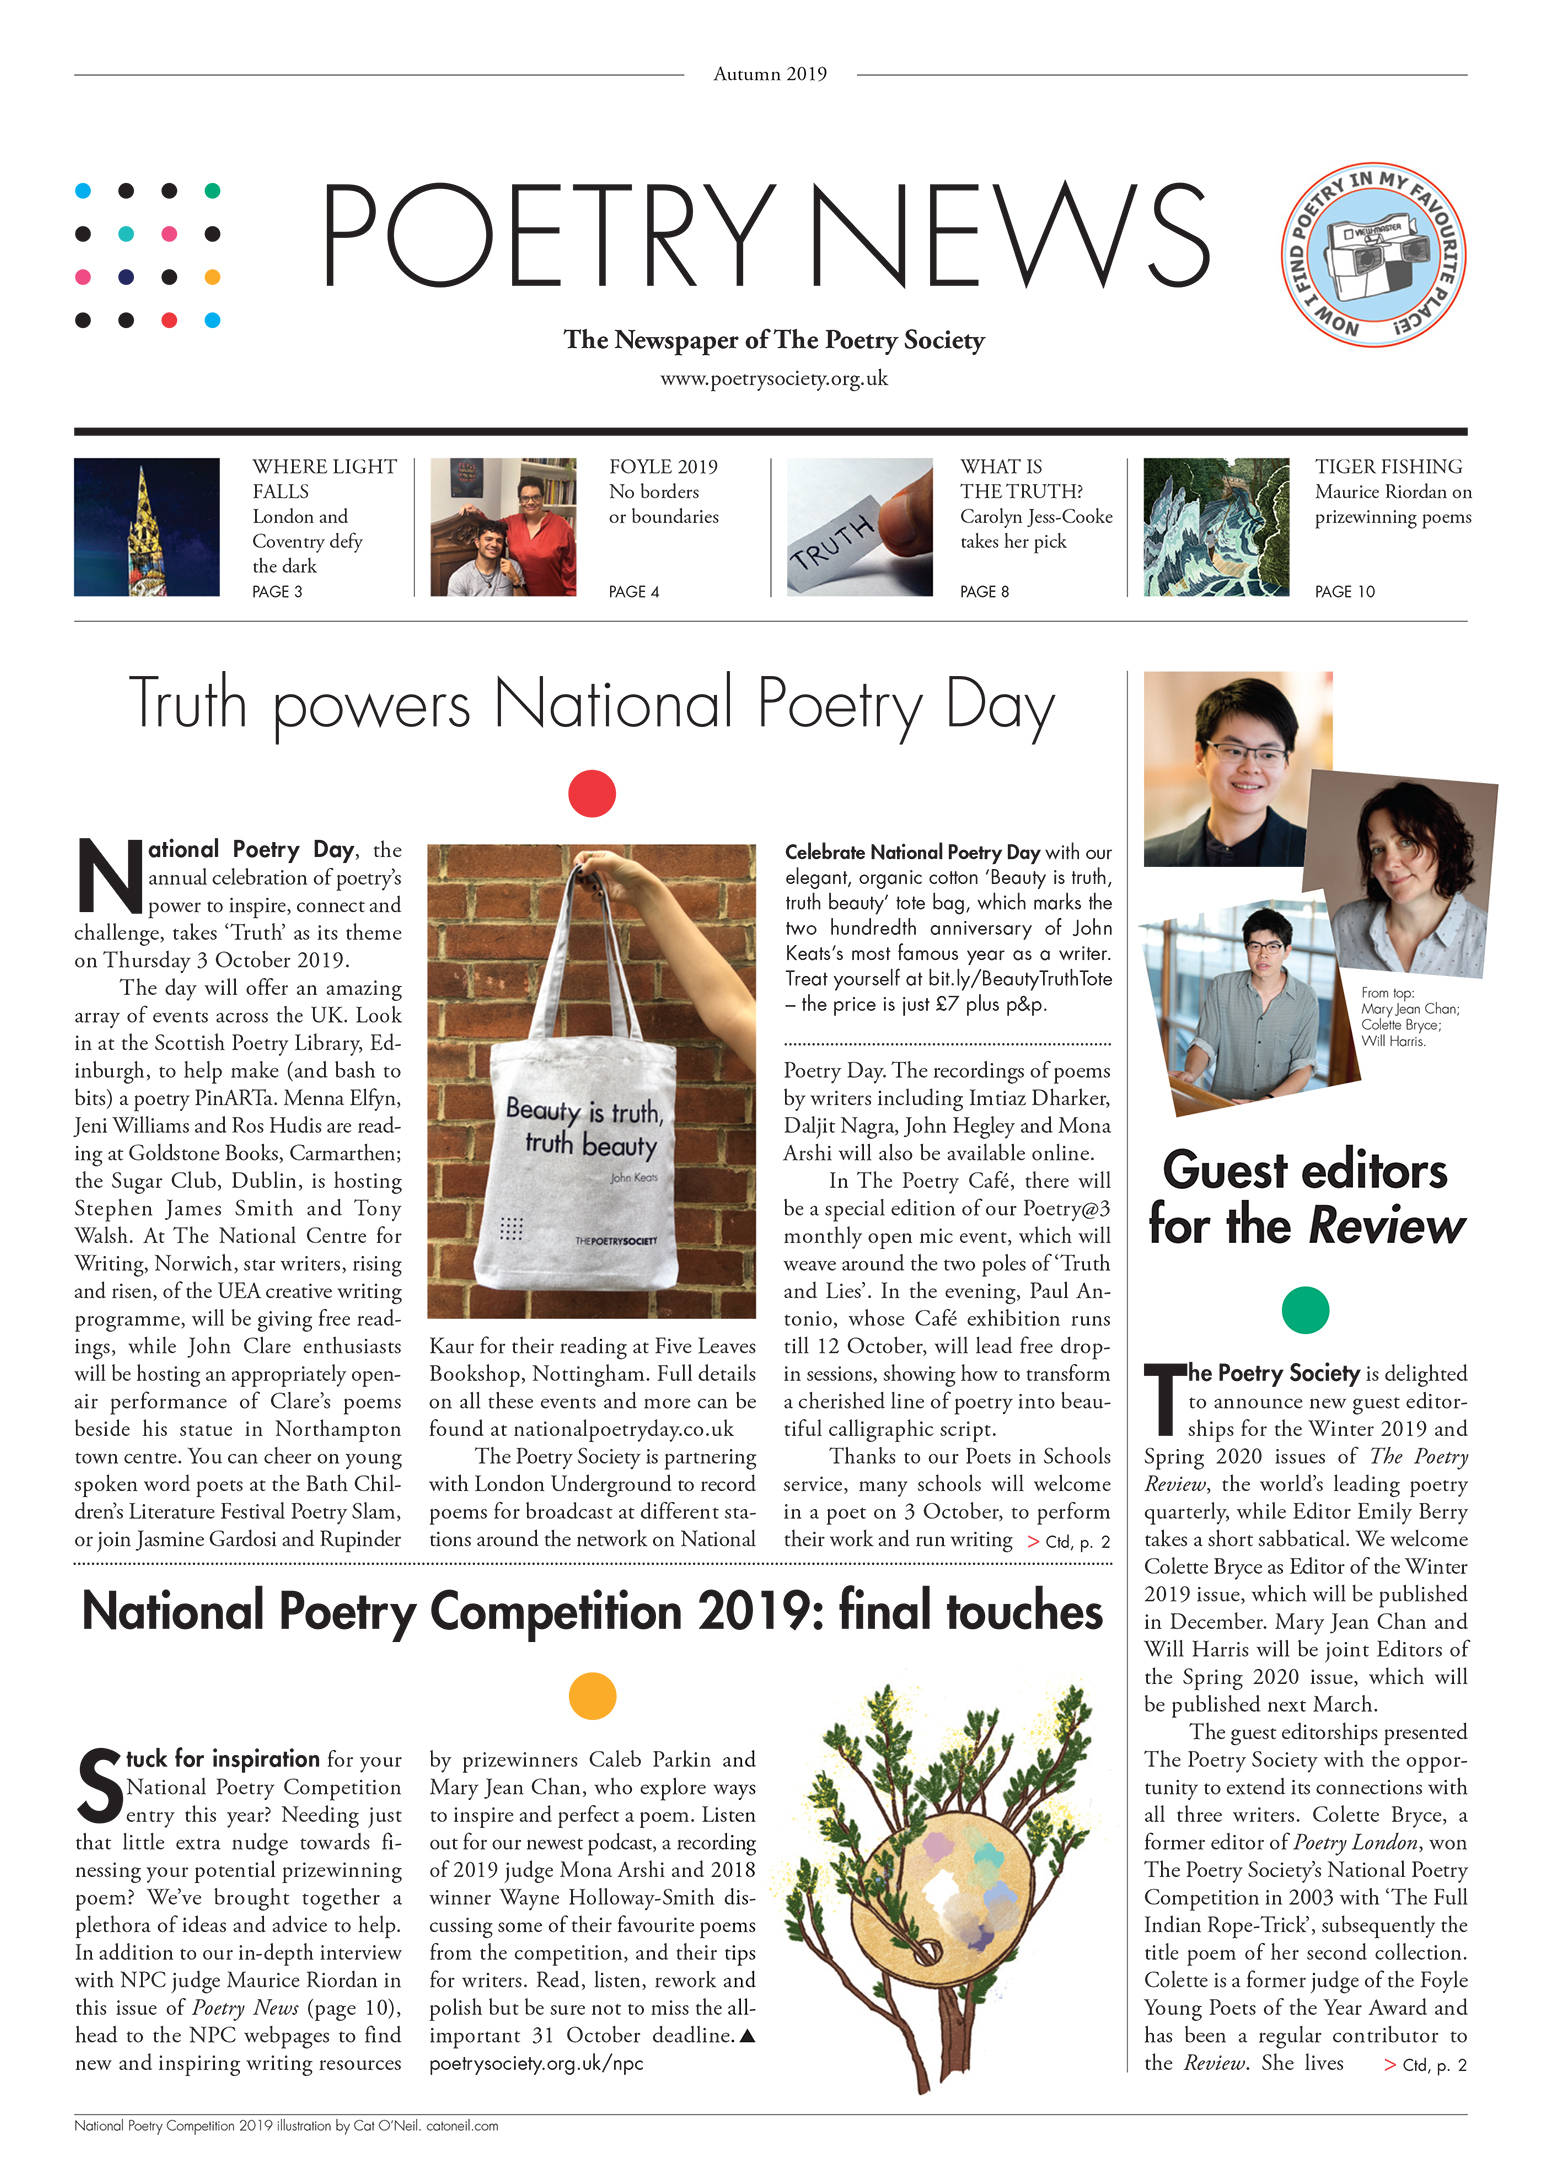 Front page of members' quarterly newspaper of The Poetry Society, with coverage of National Poetry Day 2019, the guest editors for the Winter 2019 and Spring 2020 issues of The Poetry Review and a reminder about entering the National Poetry Competition, with the help of new resources and podcast discussions.